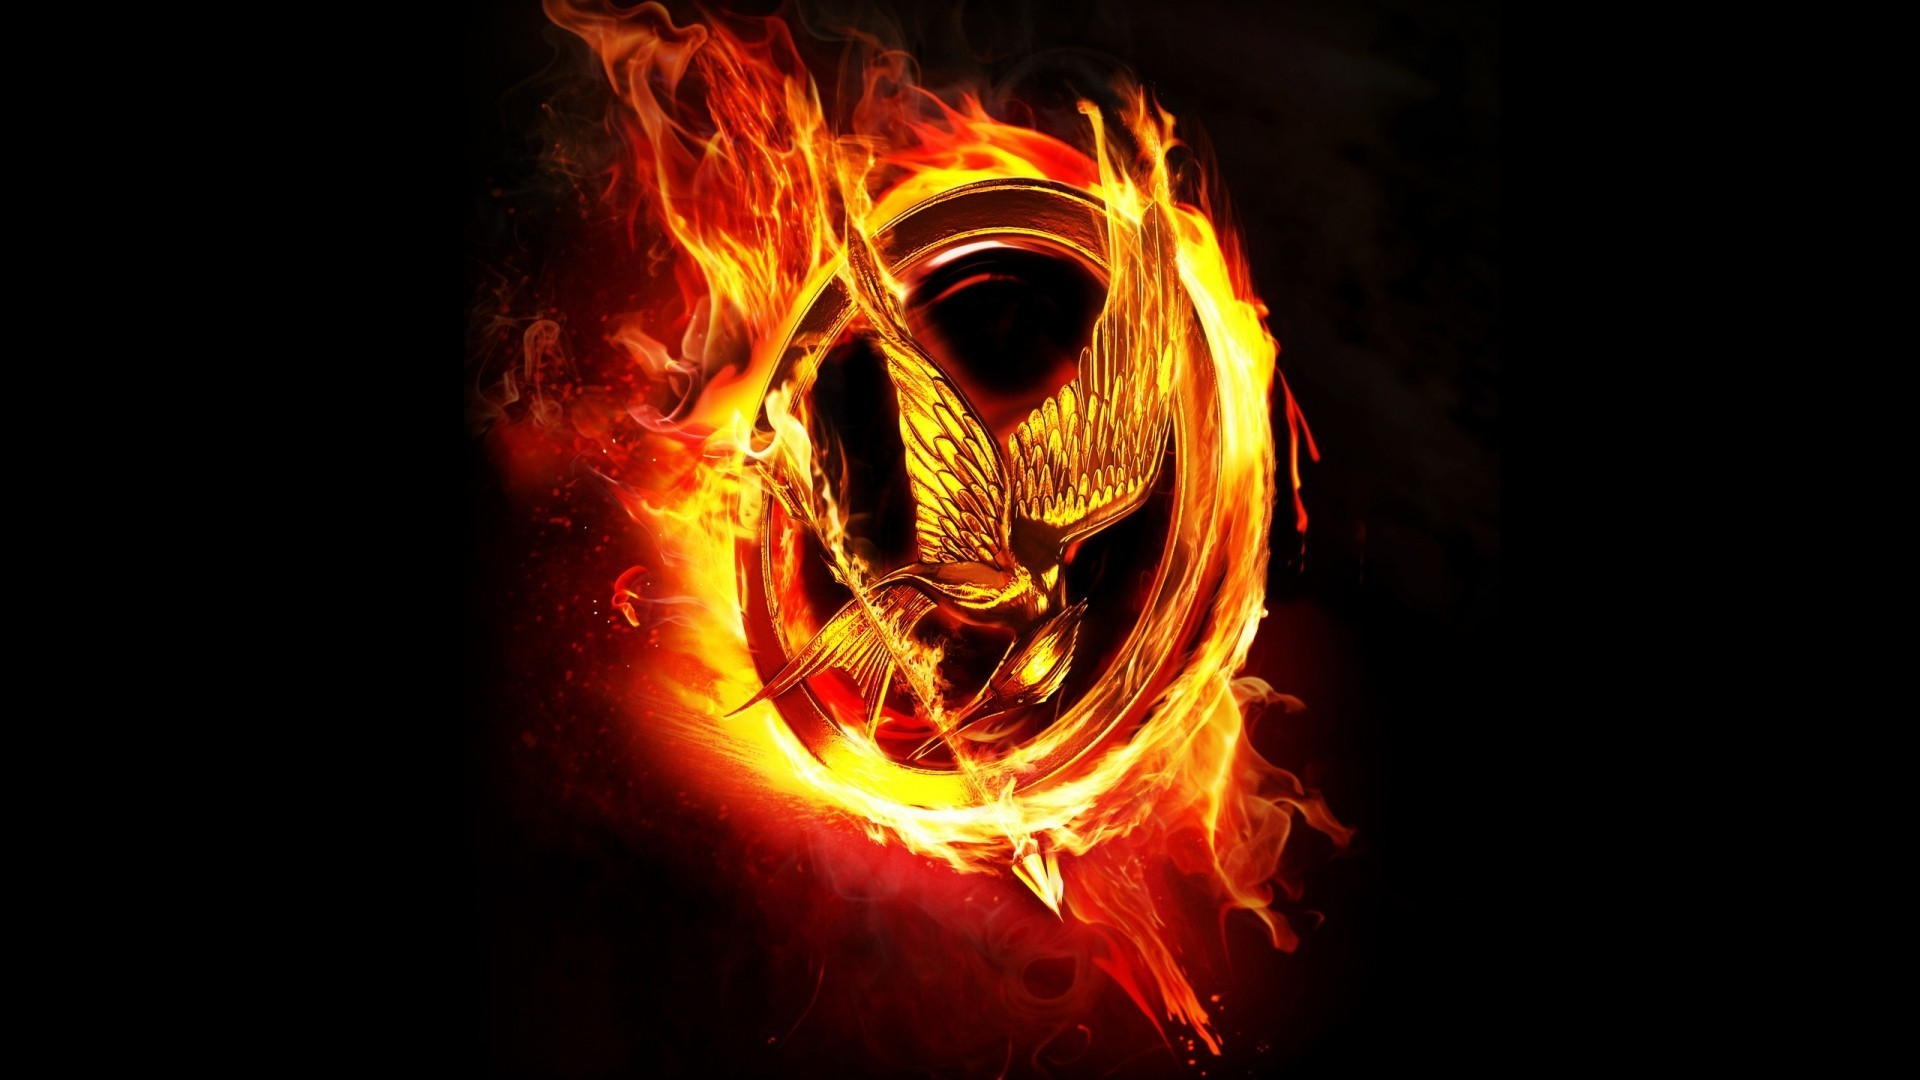 Cool 3d Fire Wallpaper The Hunger Games Movies Wallpapers Hd Desktop And